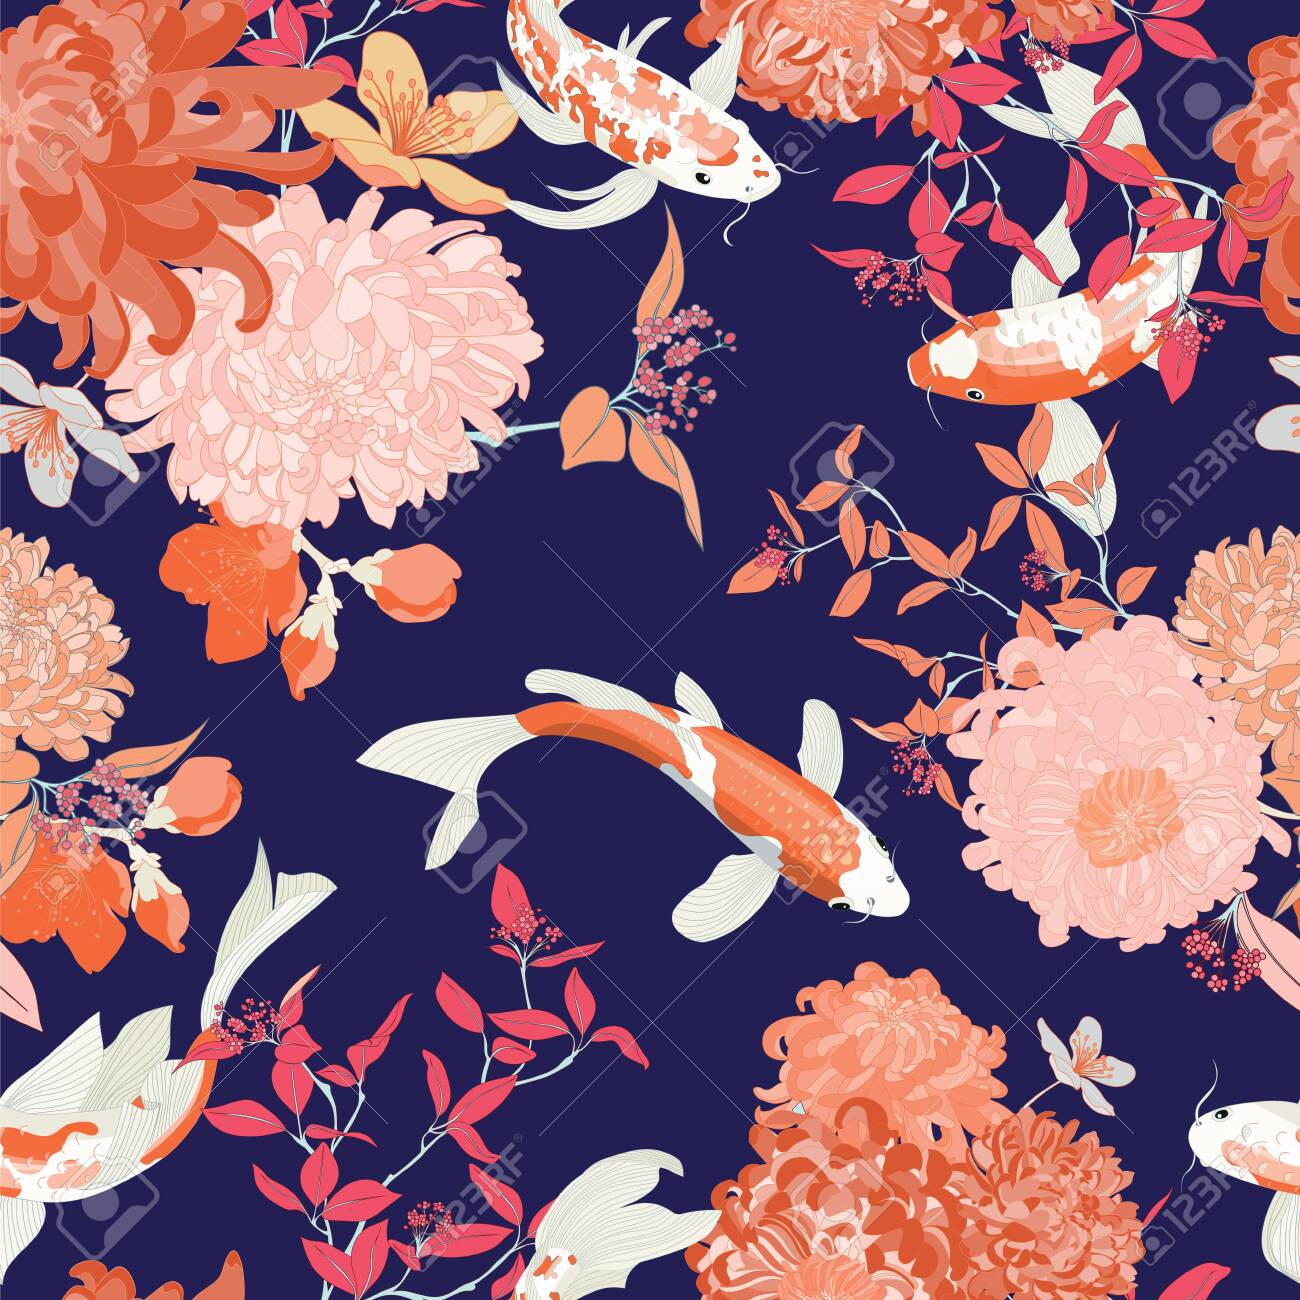 Koi Fish Pond Seamless Vector Pattern Chrysanthemum Wallpaper Royalty Free Cliparts Vectors And Stock Illustration Image 139331107